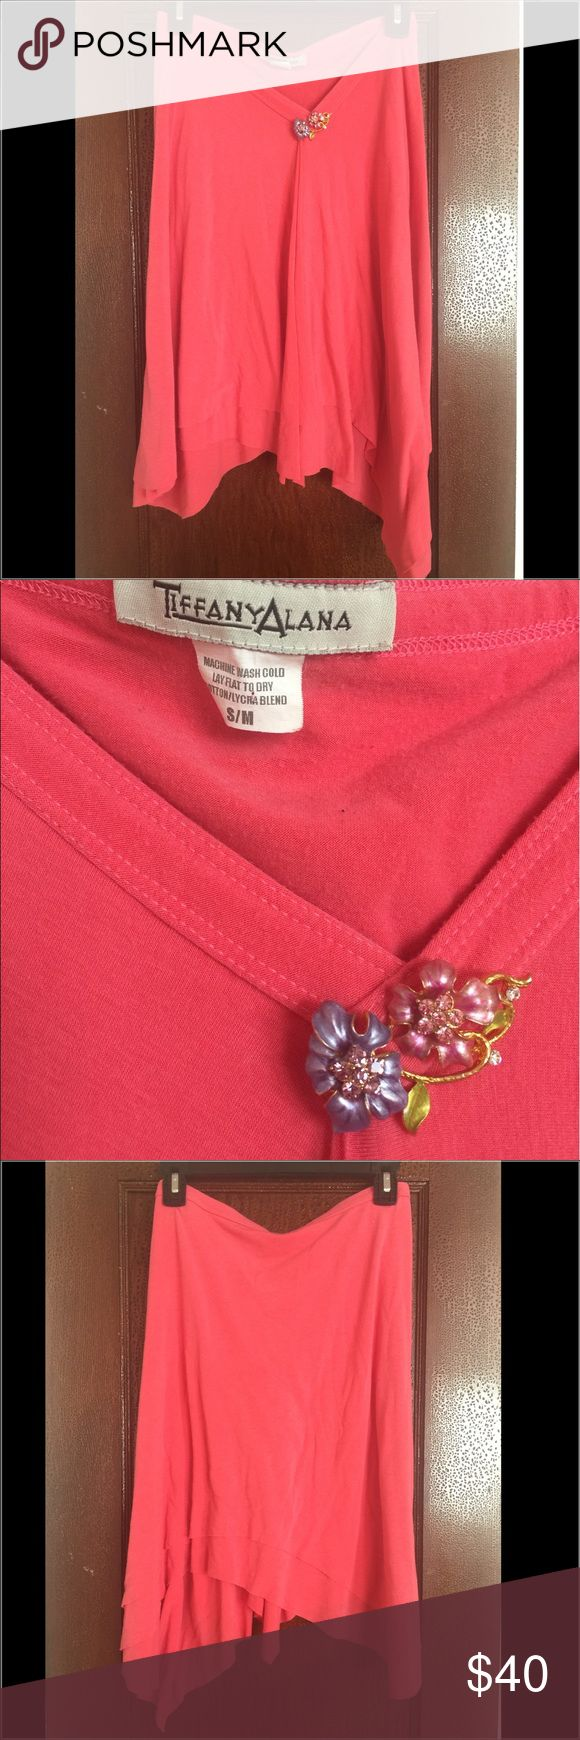 Tiffany Alana  Asymmetrical Brooch Skirt Double layered skirt; removable brooch pin; Cotton Lycra Blend; size Small/Mediun; coral/mango color; in EUC; worn a few times Tiffany Alana Skirts Asymmetrical